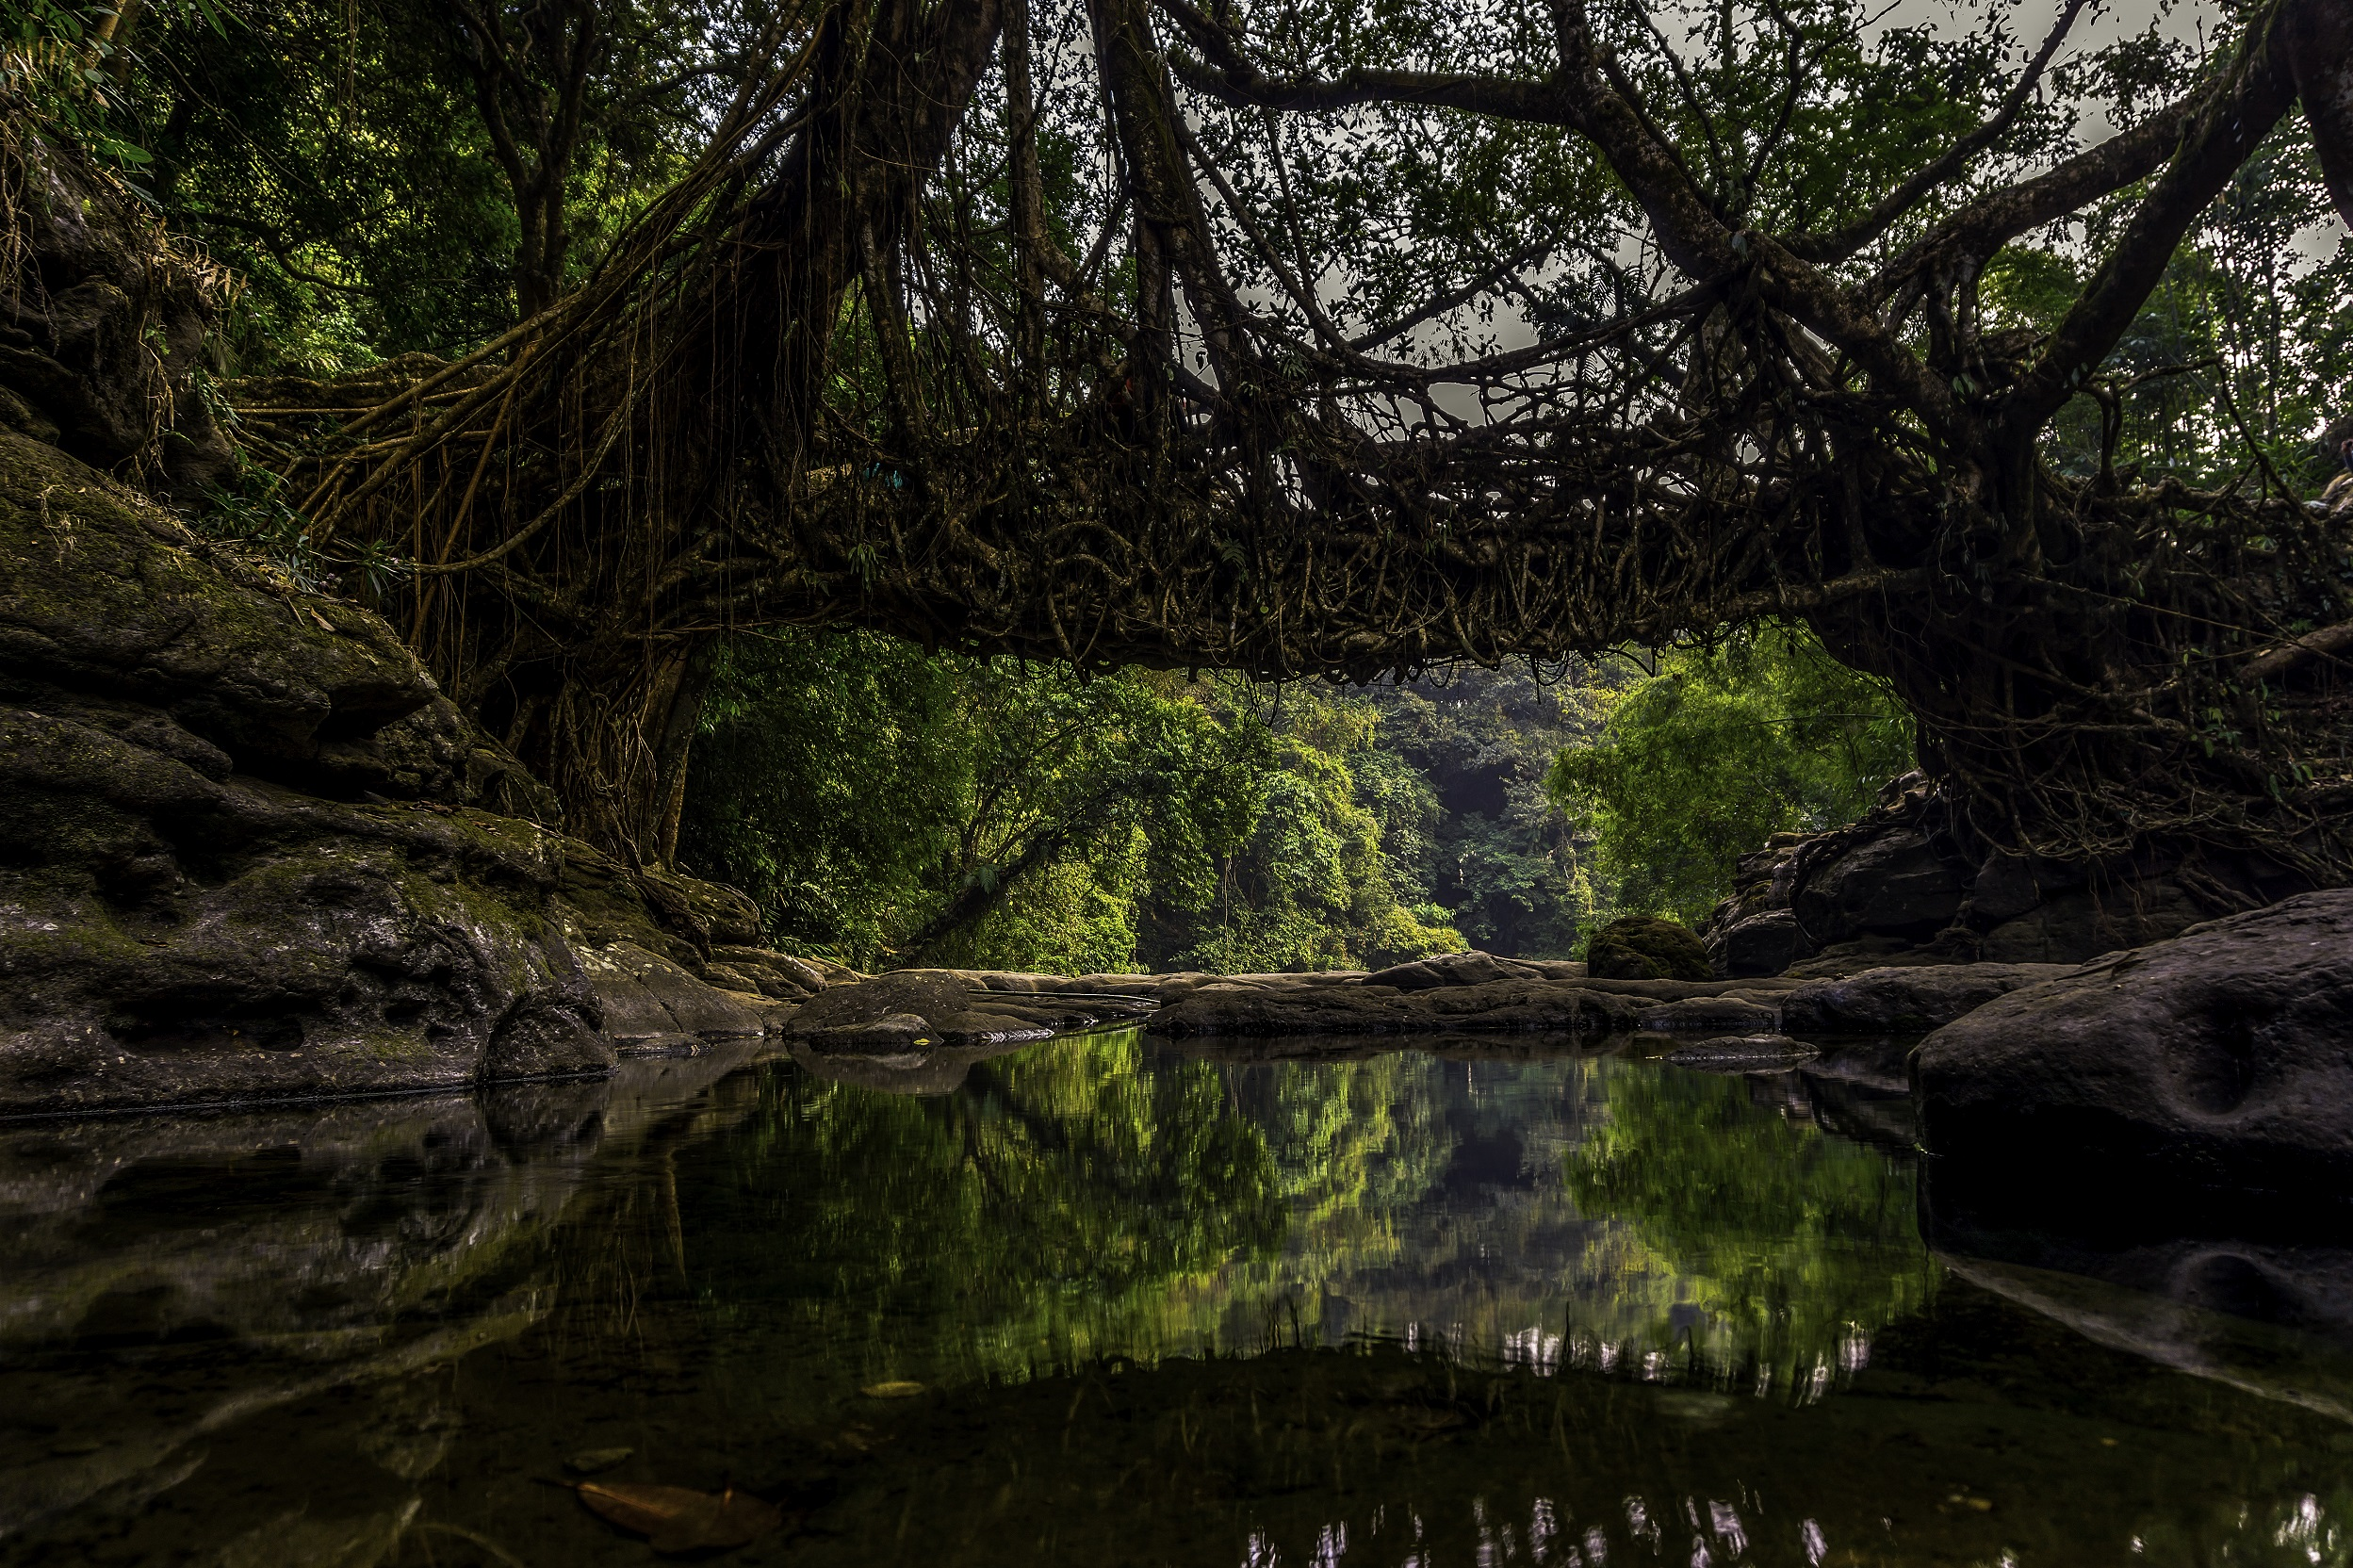 The Megahlayan Age Fest Living Root Bridge Riwai near Mawlynnong